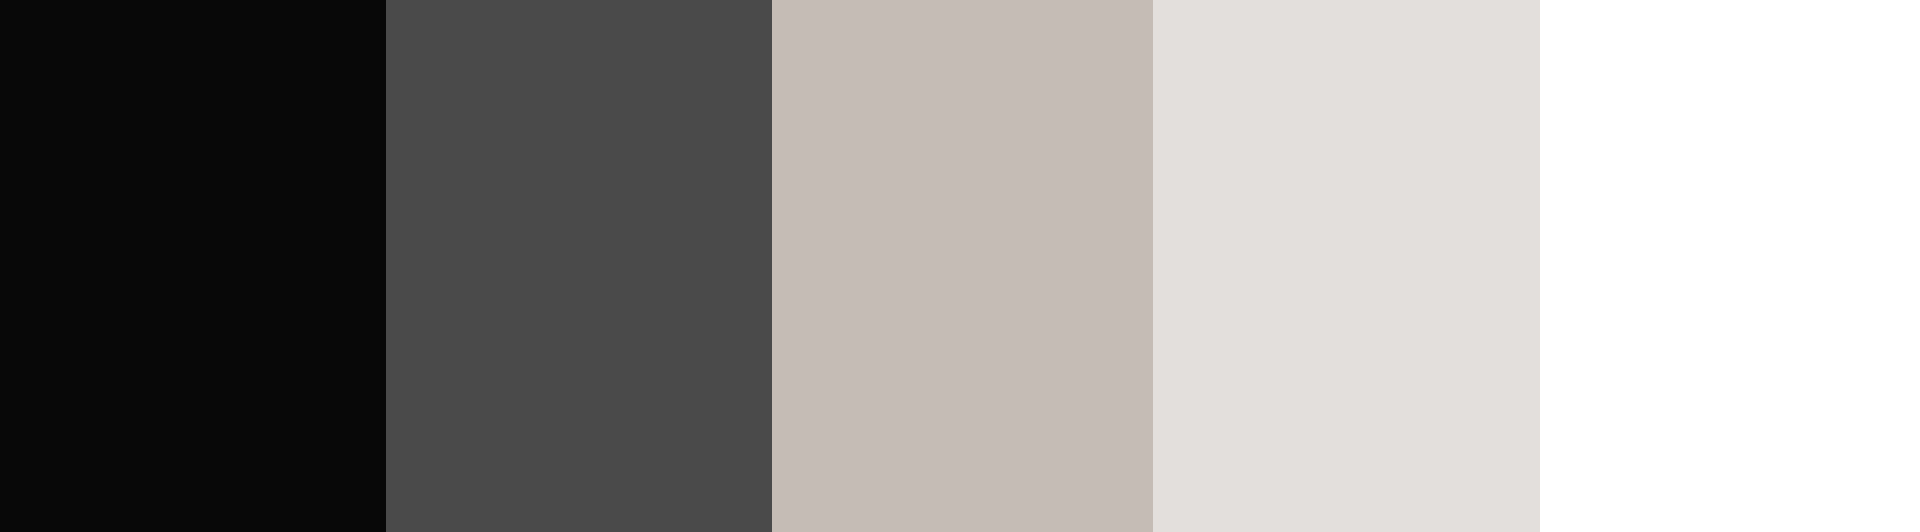 White/Beige/Light Gray + Charcoal Gray color palette